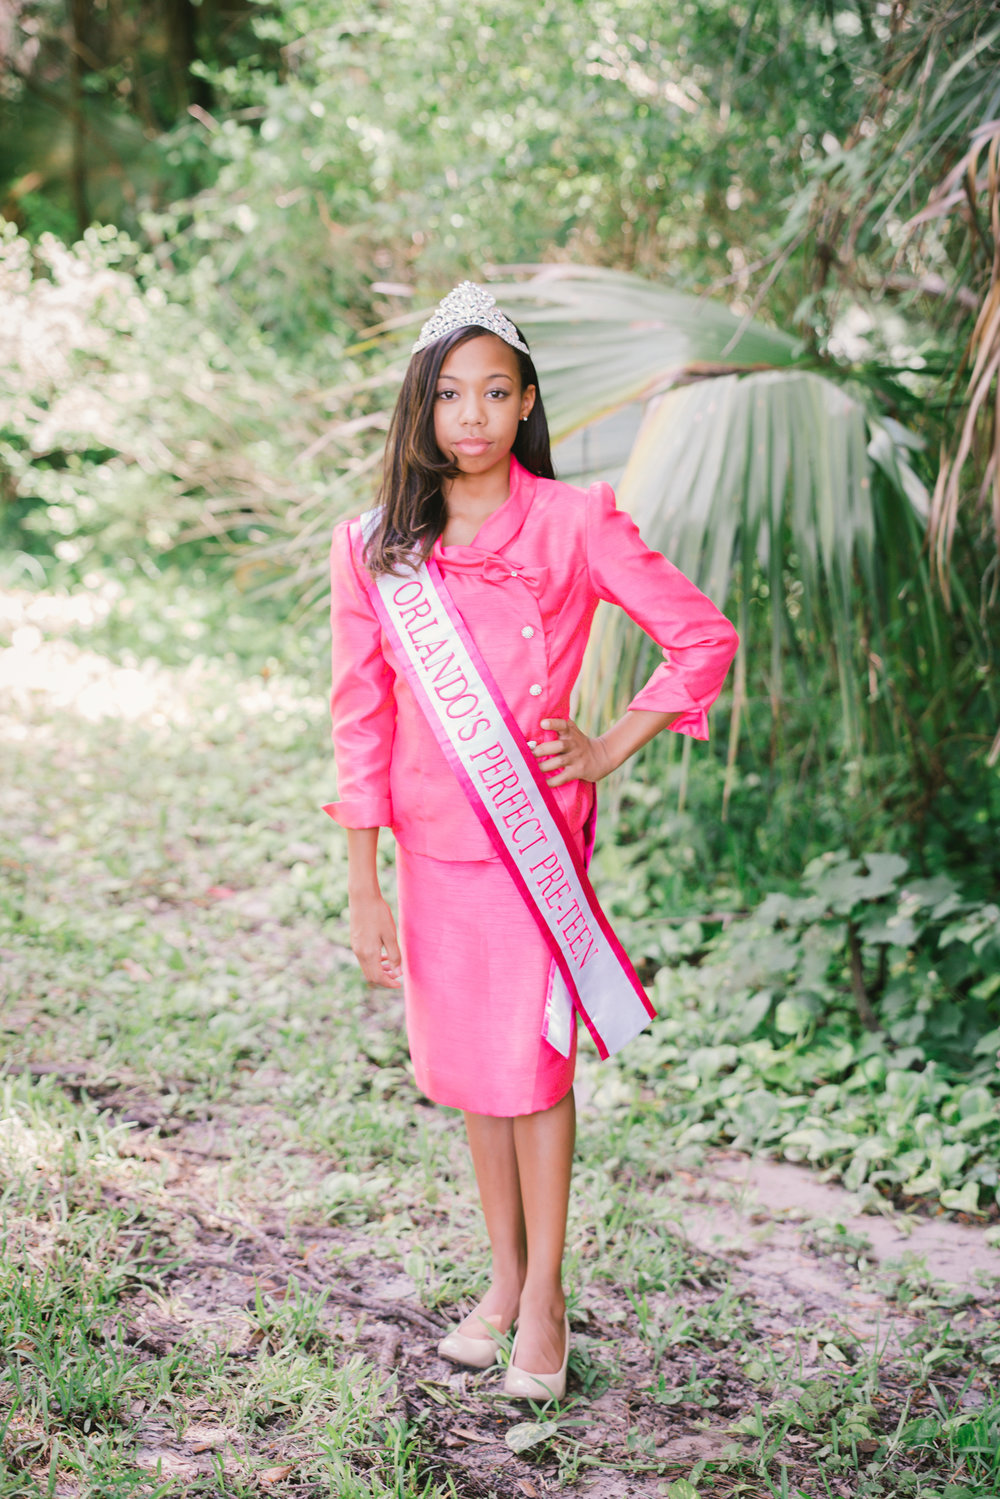 Worlds-perfect-pageant-preteen, Tampa-photography-of-model